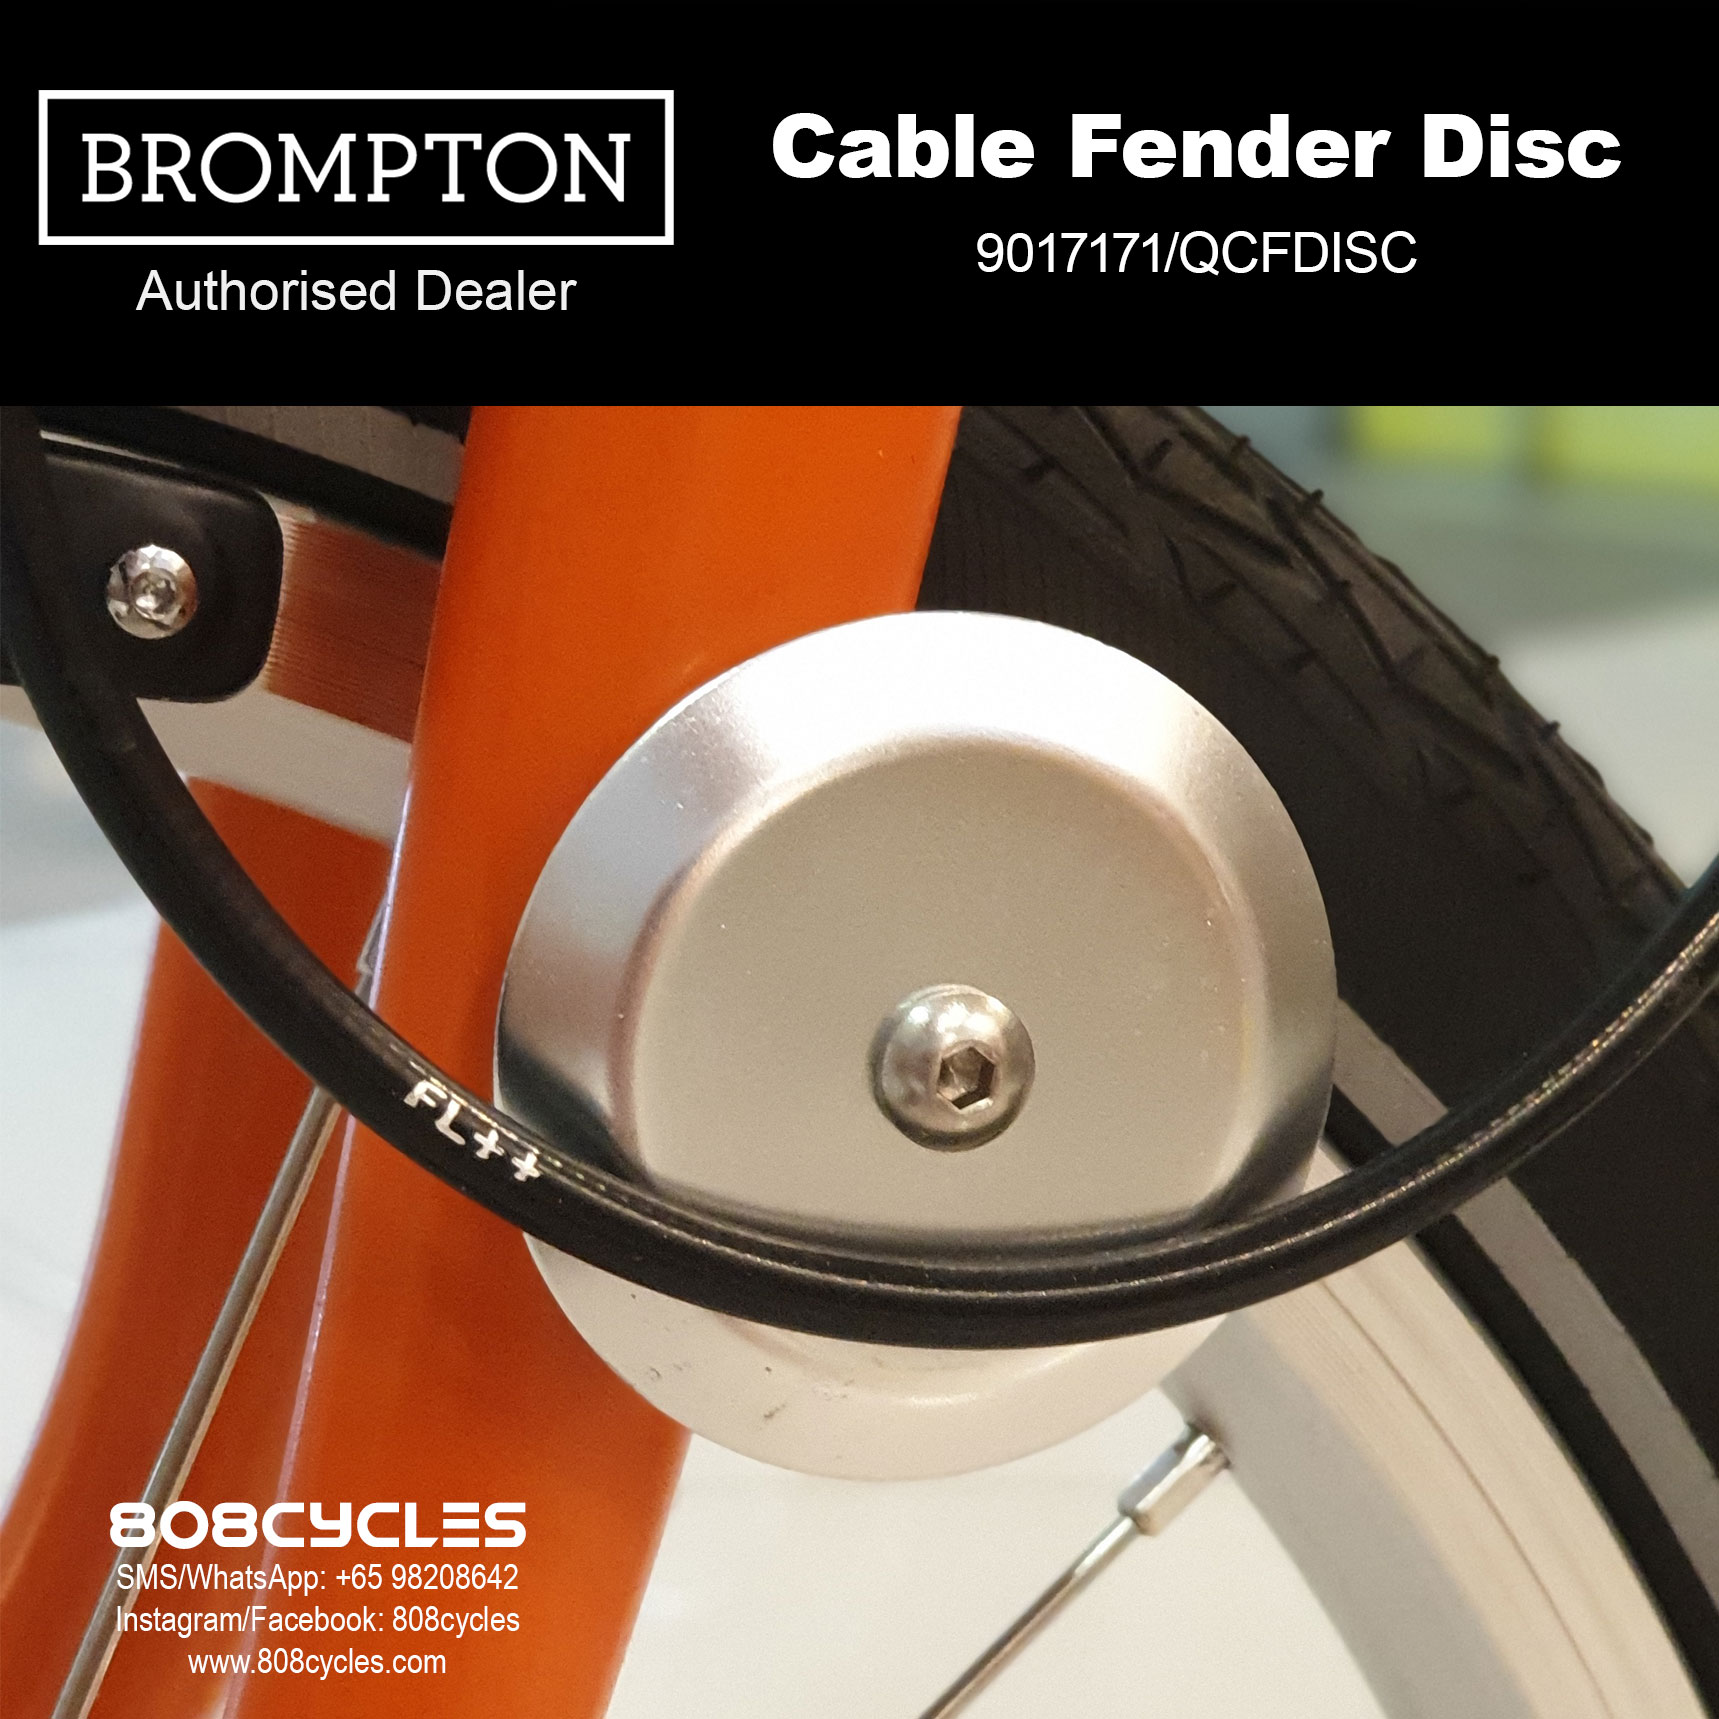 Brompton Cable Fender Disc For bikes without mudguards E Black Edition